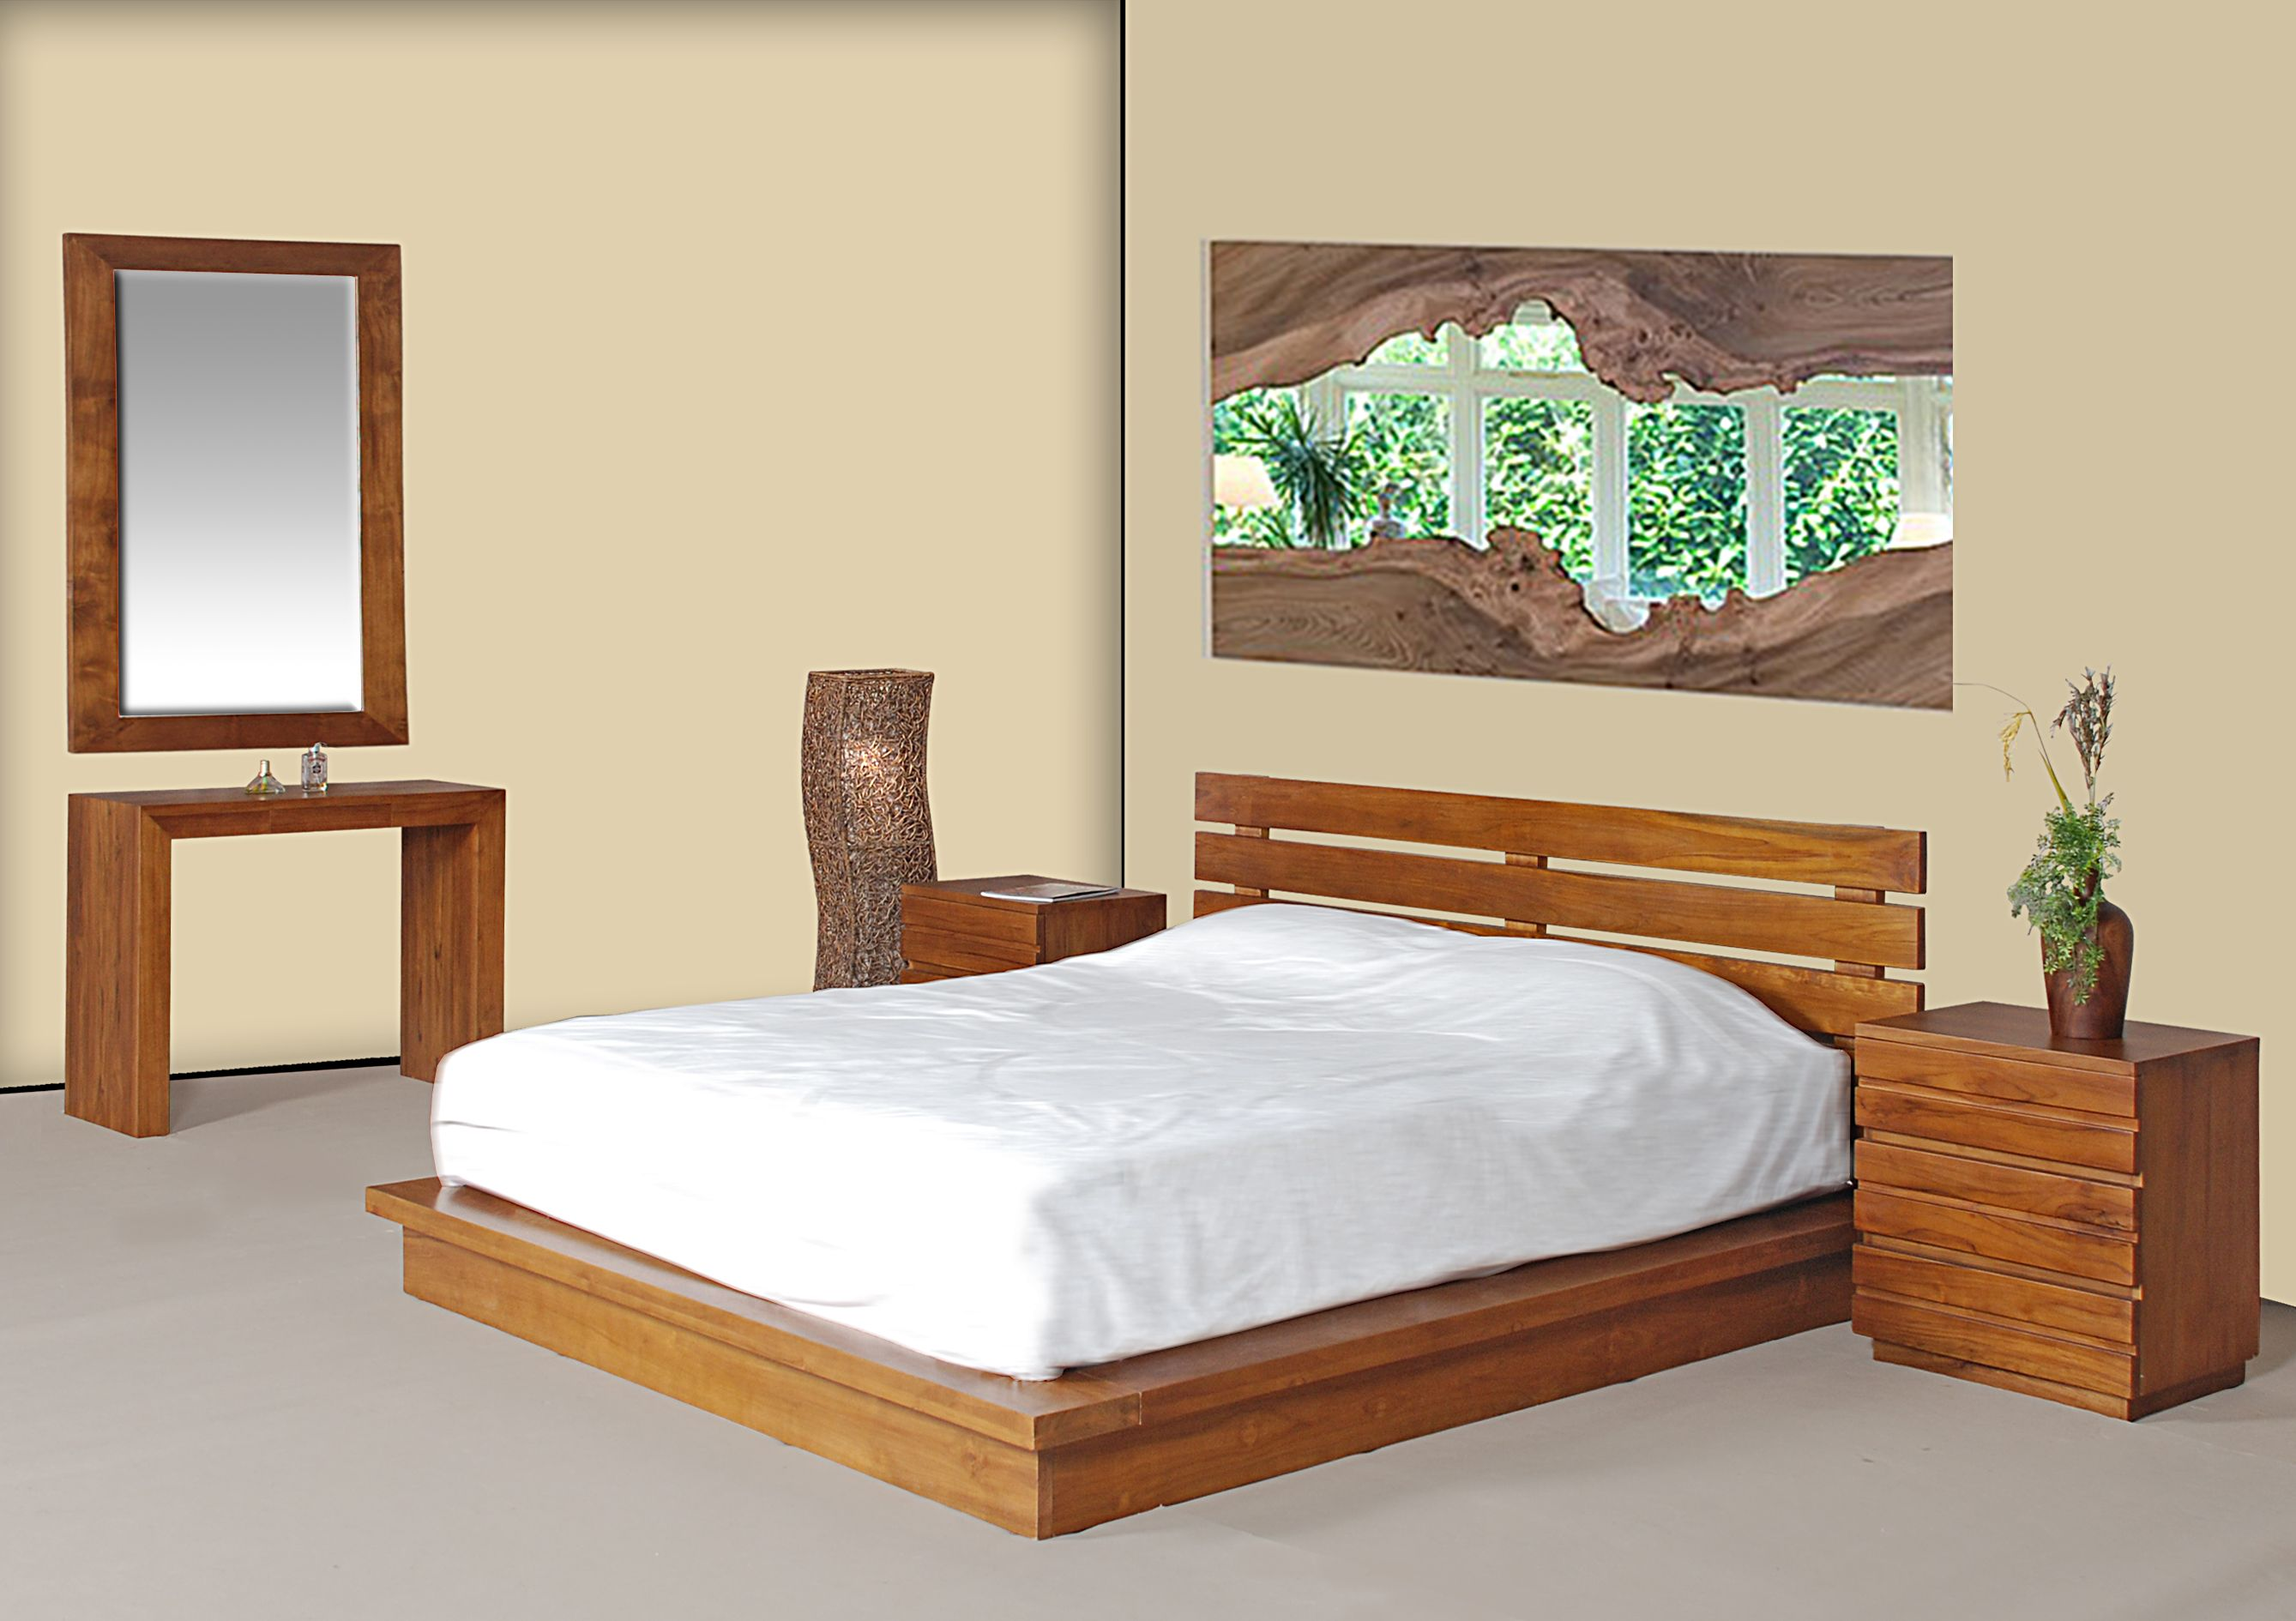 Teak Wood Bedroom Set in Malaysia 03-80820341 | Teak wood bedroom ...